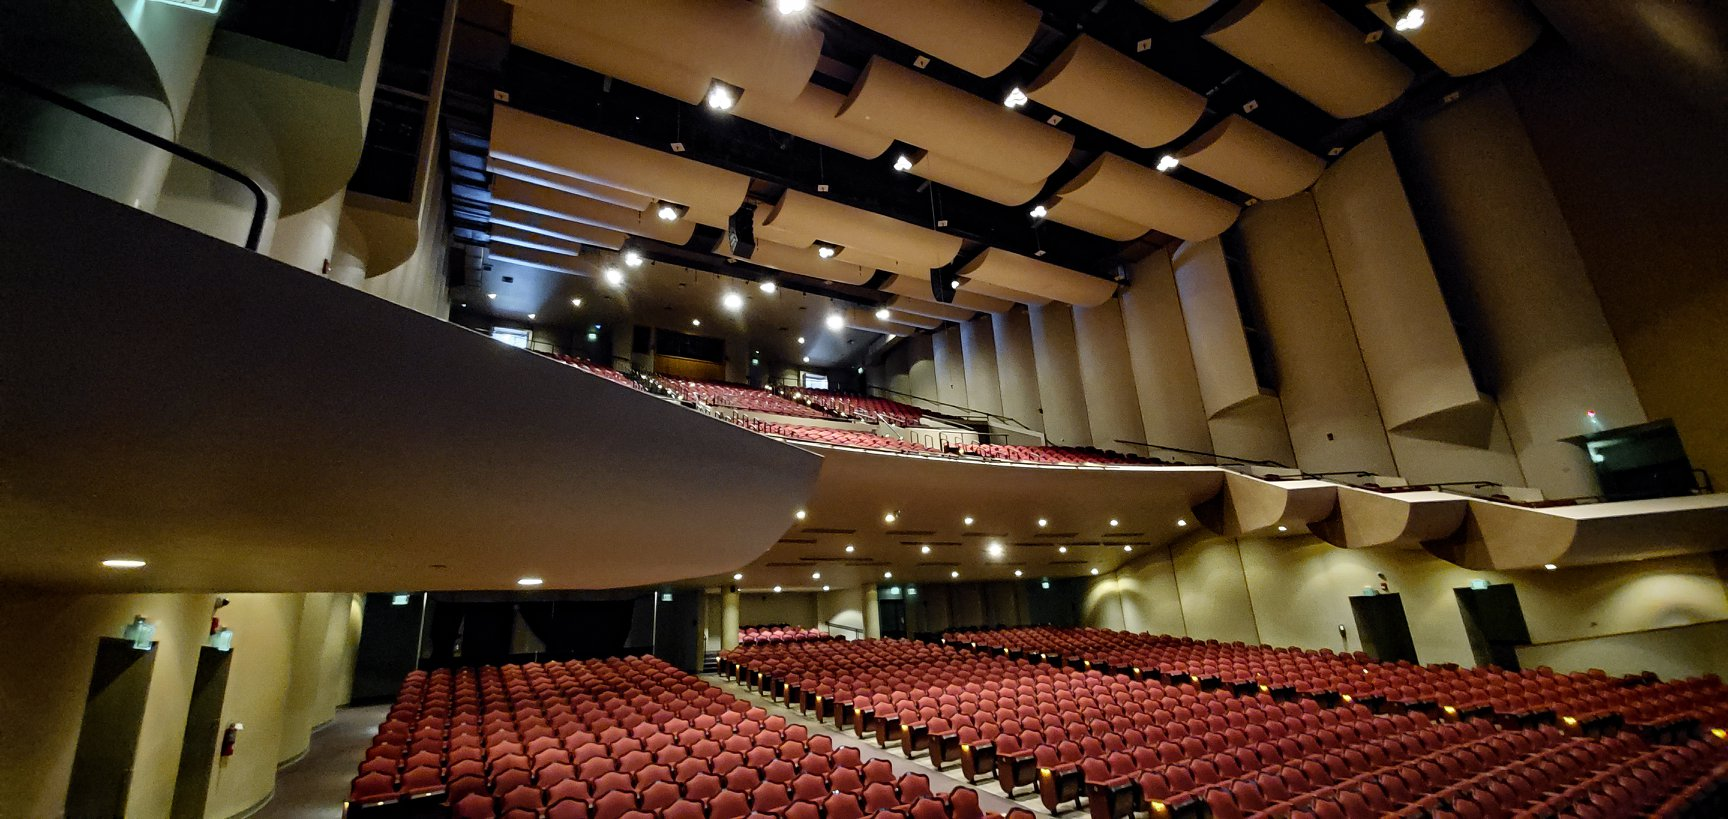 Theatre-Performing Arts Event in Fort Myers